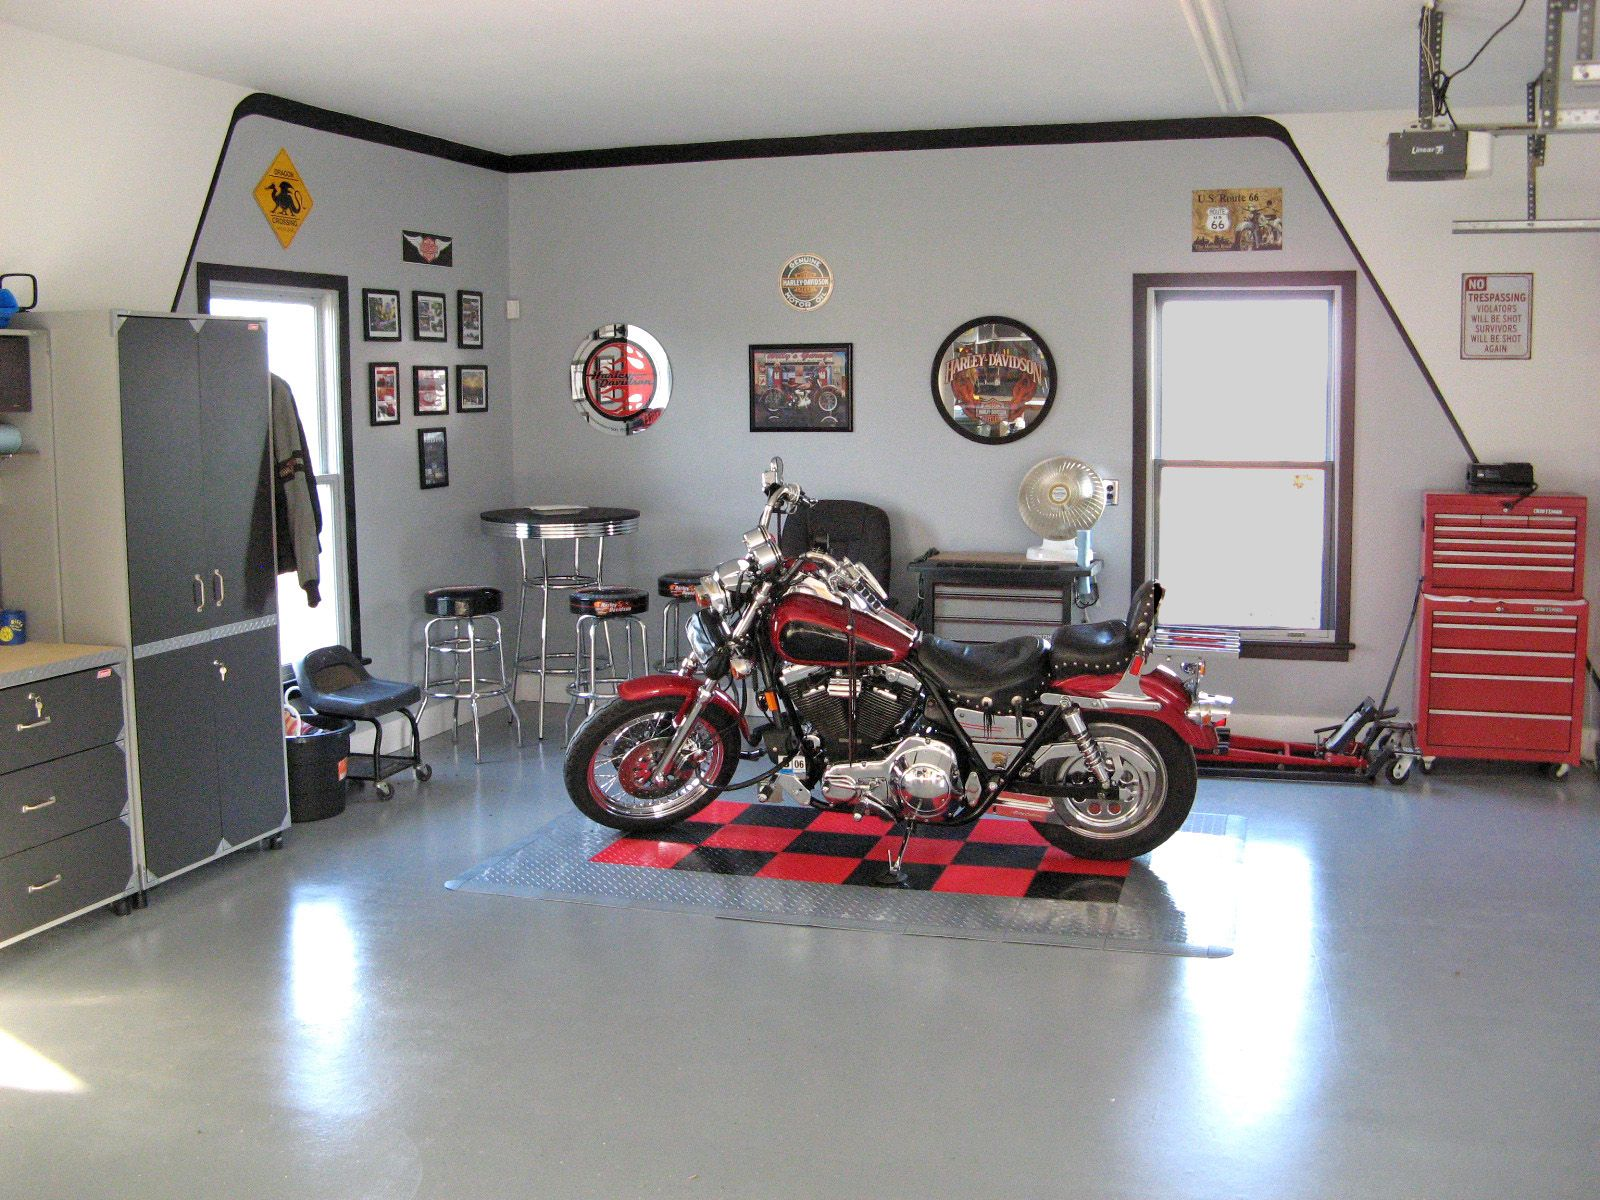 Harley color carpet tiles - Decoration After Remodel Inside Harley Davidson Garage Painted With Gray Wall And Floor Interior Color Decor Plus Small Round Table With Stools In